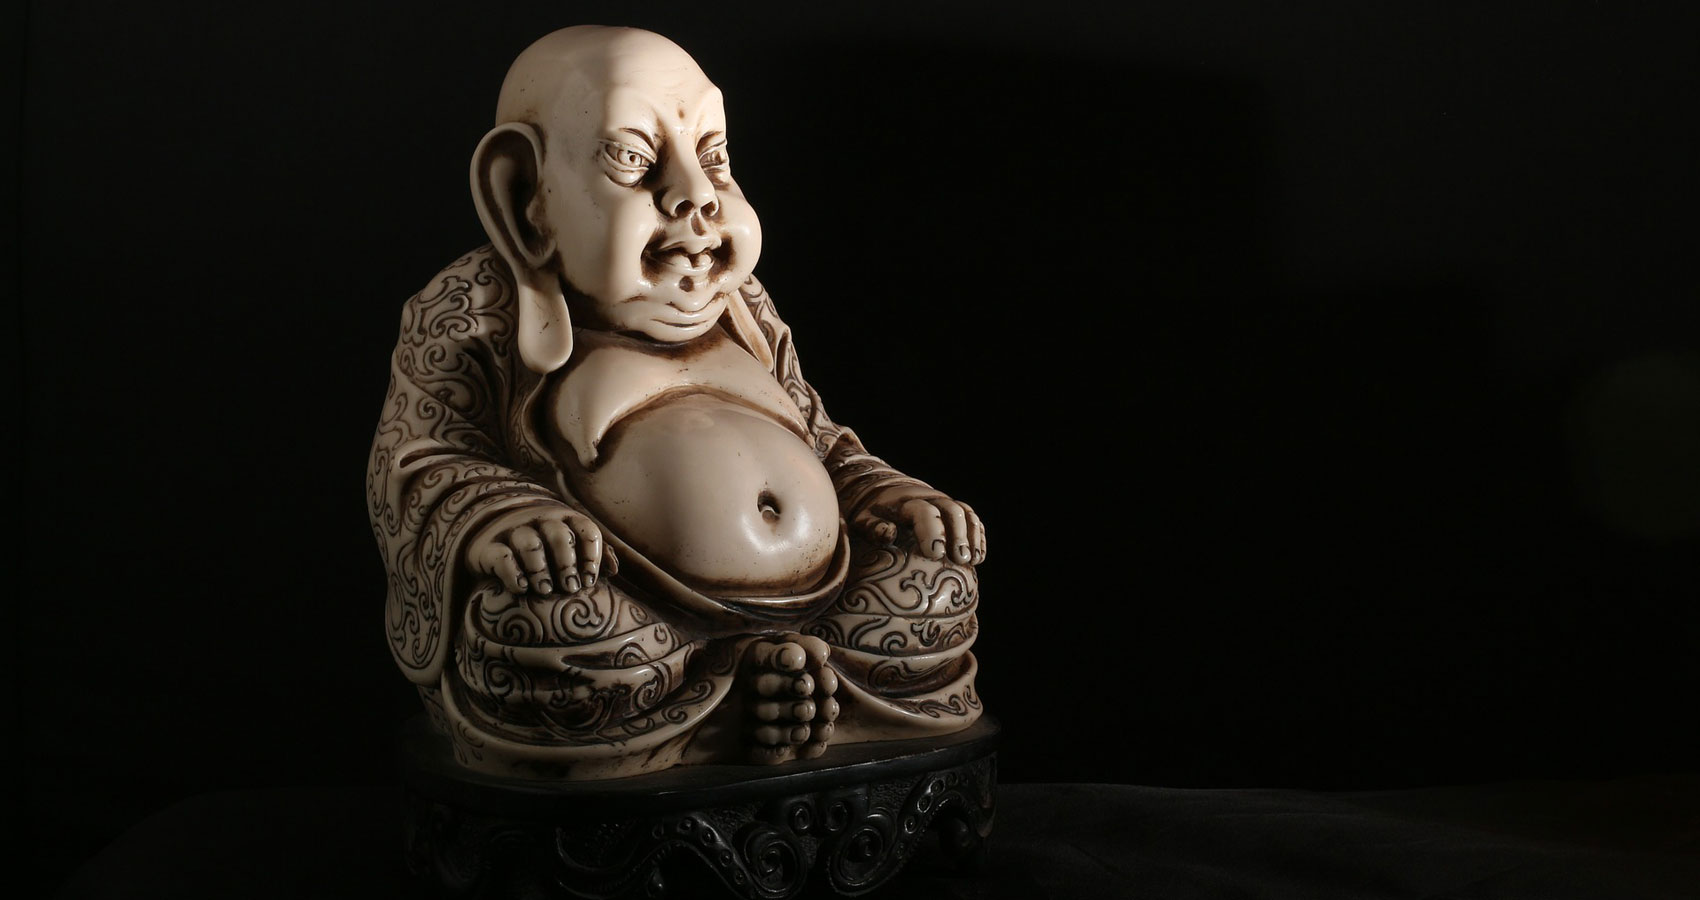 The Smile Of Emptiness And Nothingness, by Hongri Yuan at Spillowrds.com